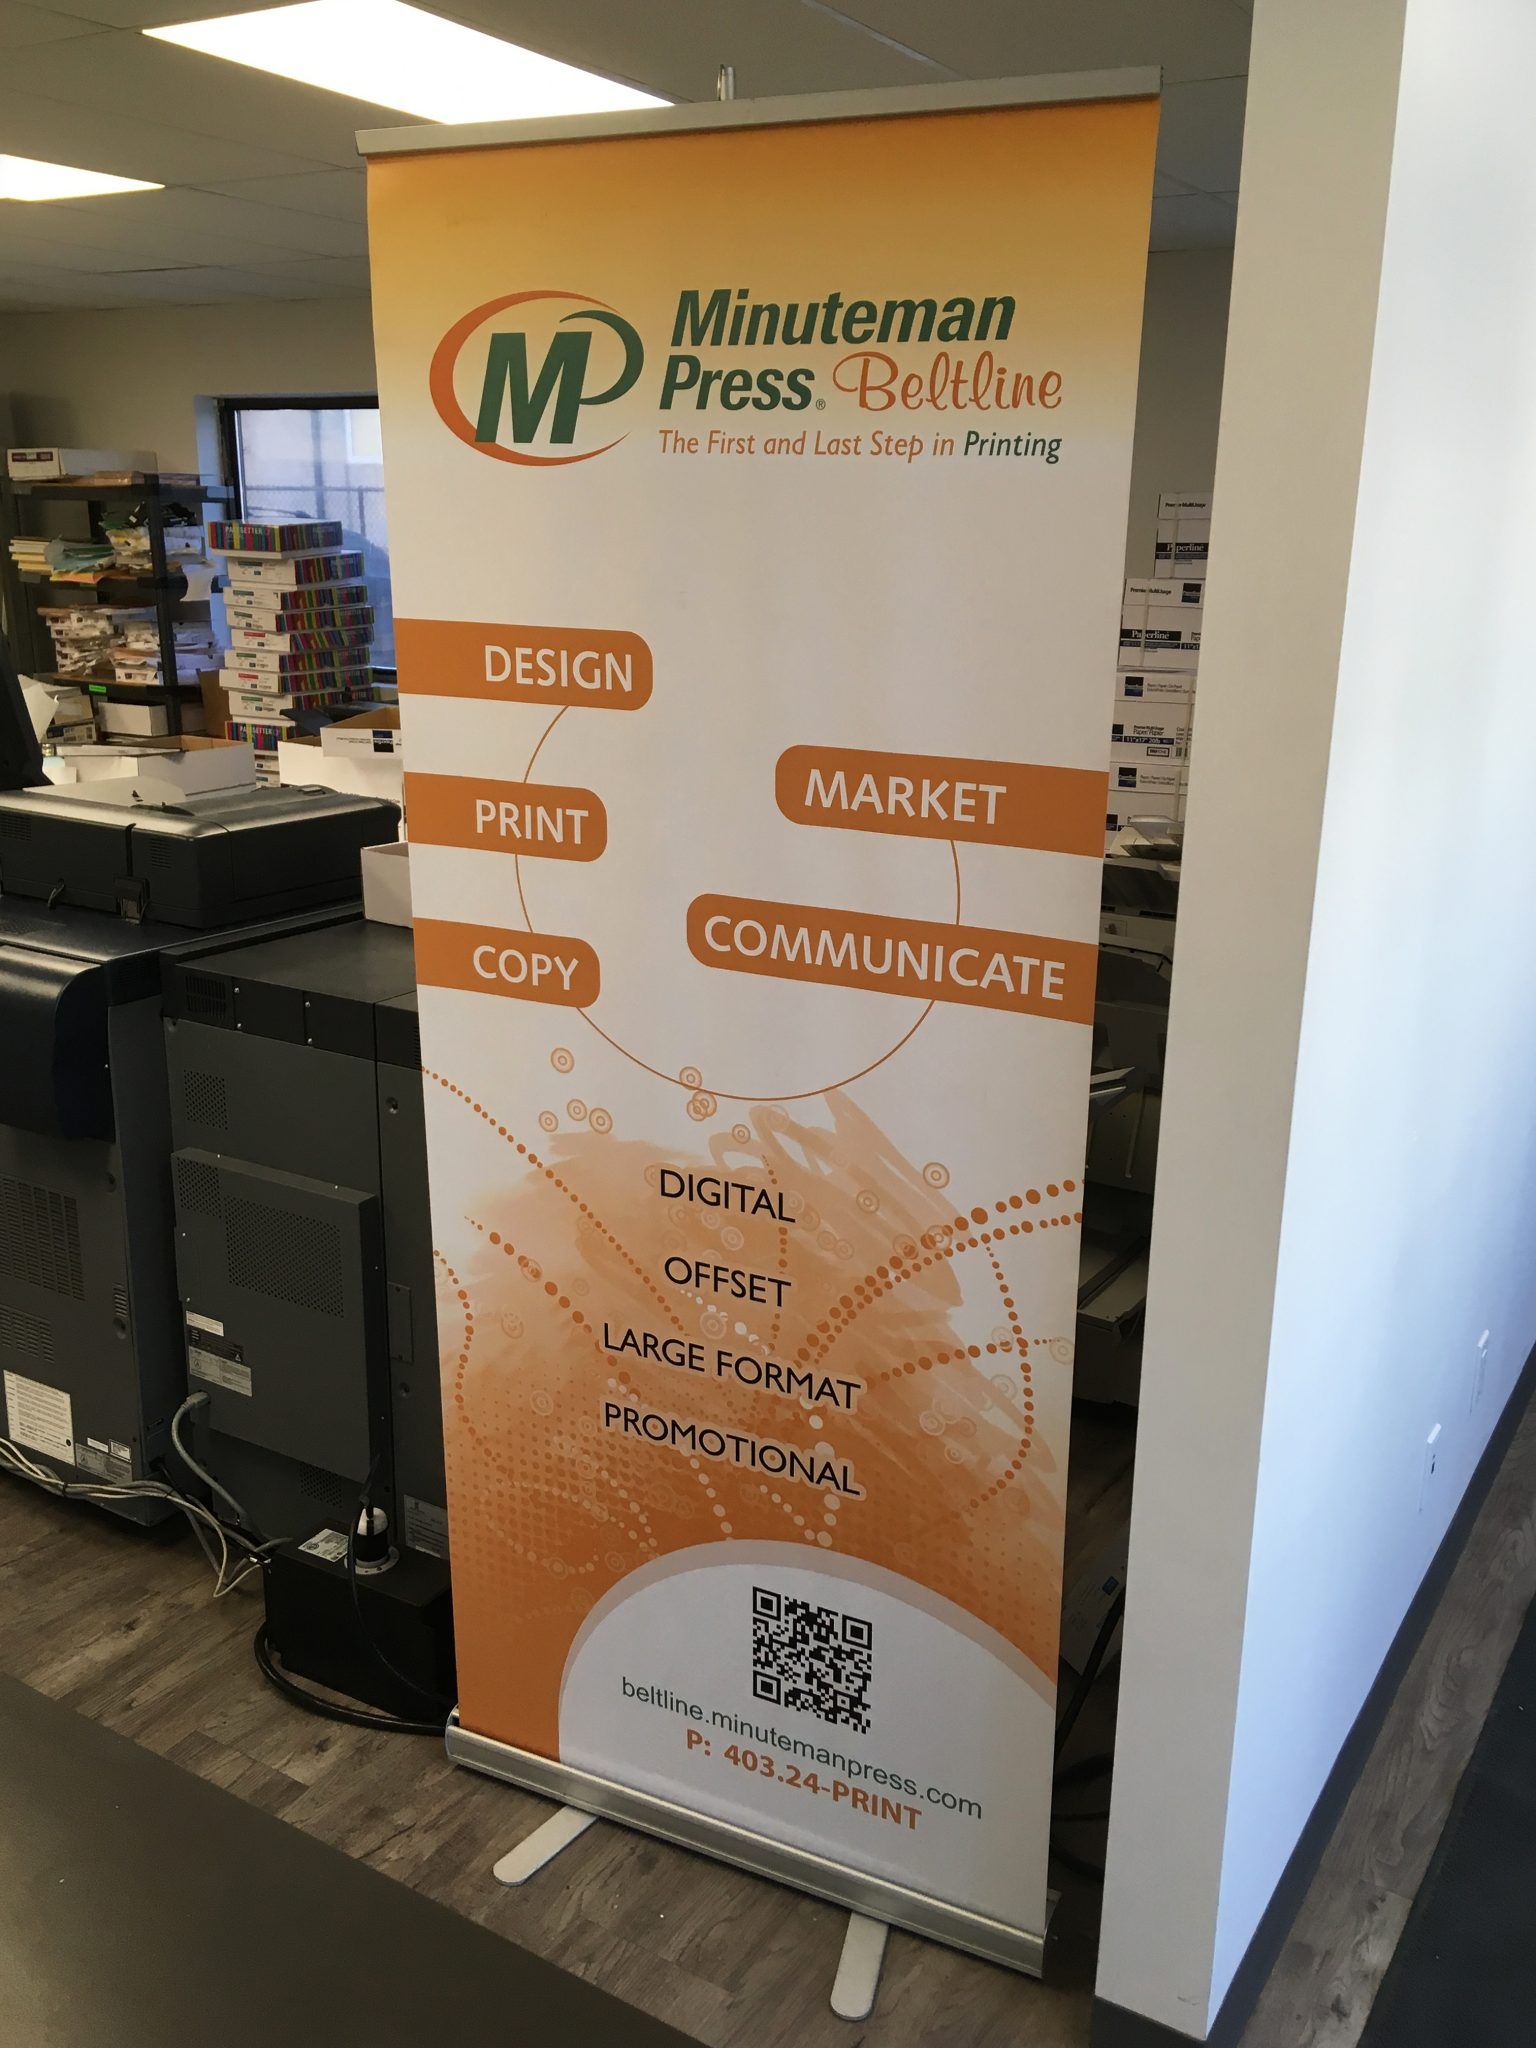 Roll Up Banner Styles By Minuteman Press Beltline In Calgary